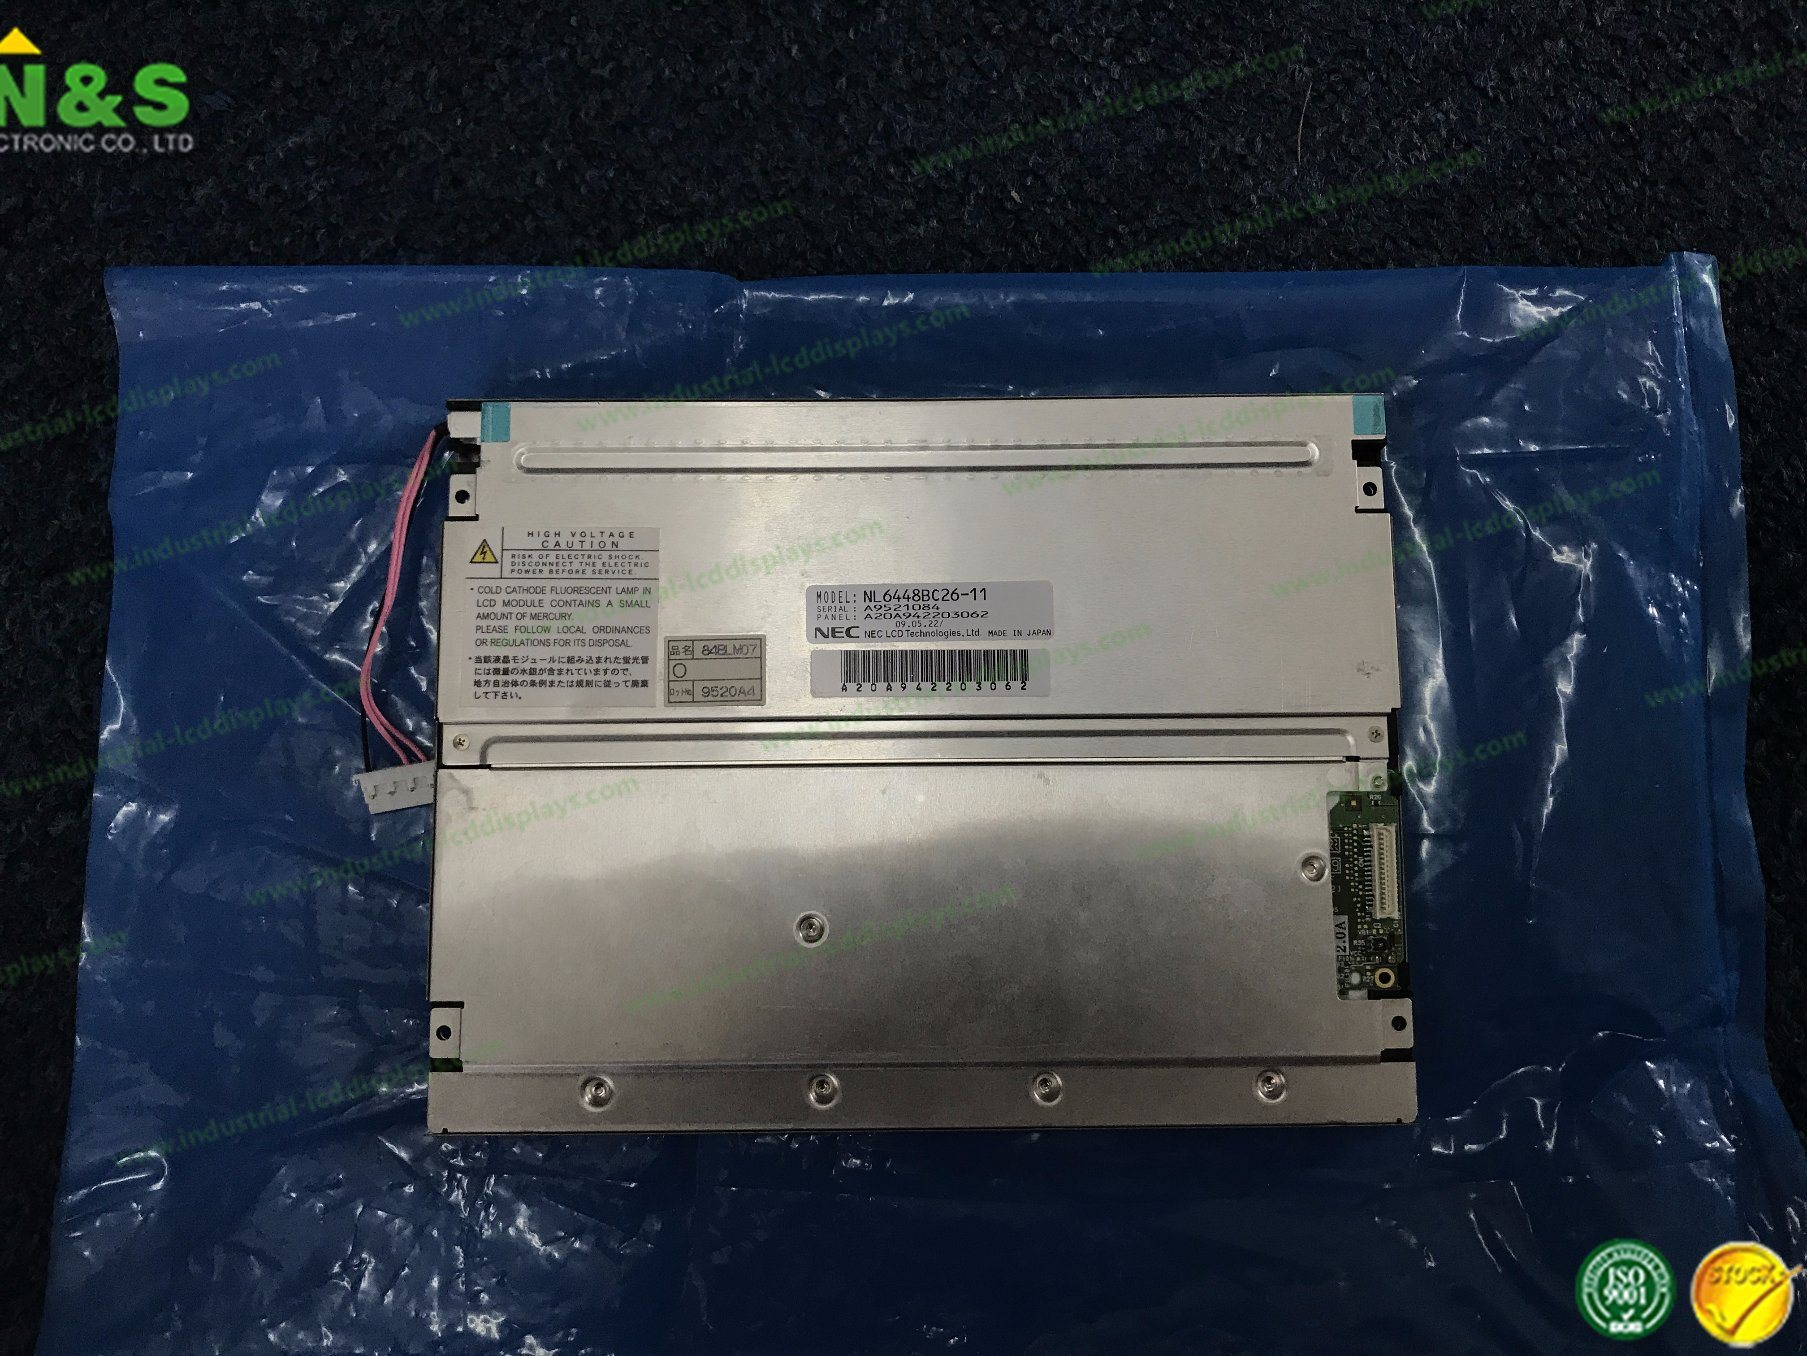 Nl6448bc26-11 8.4 Inch LCD Screen for Injection Industrial Machine